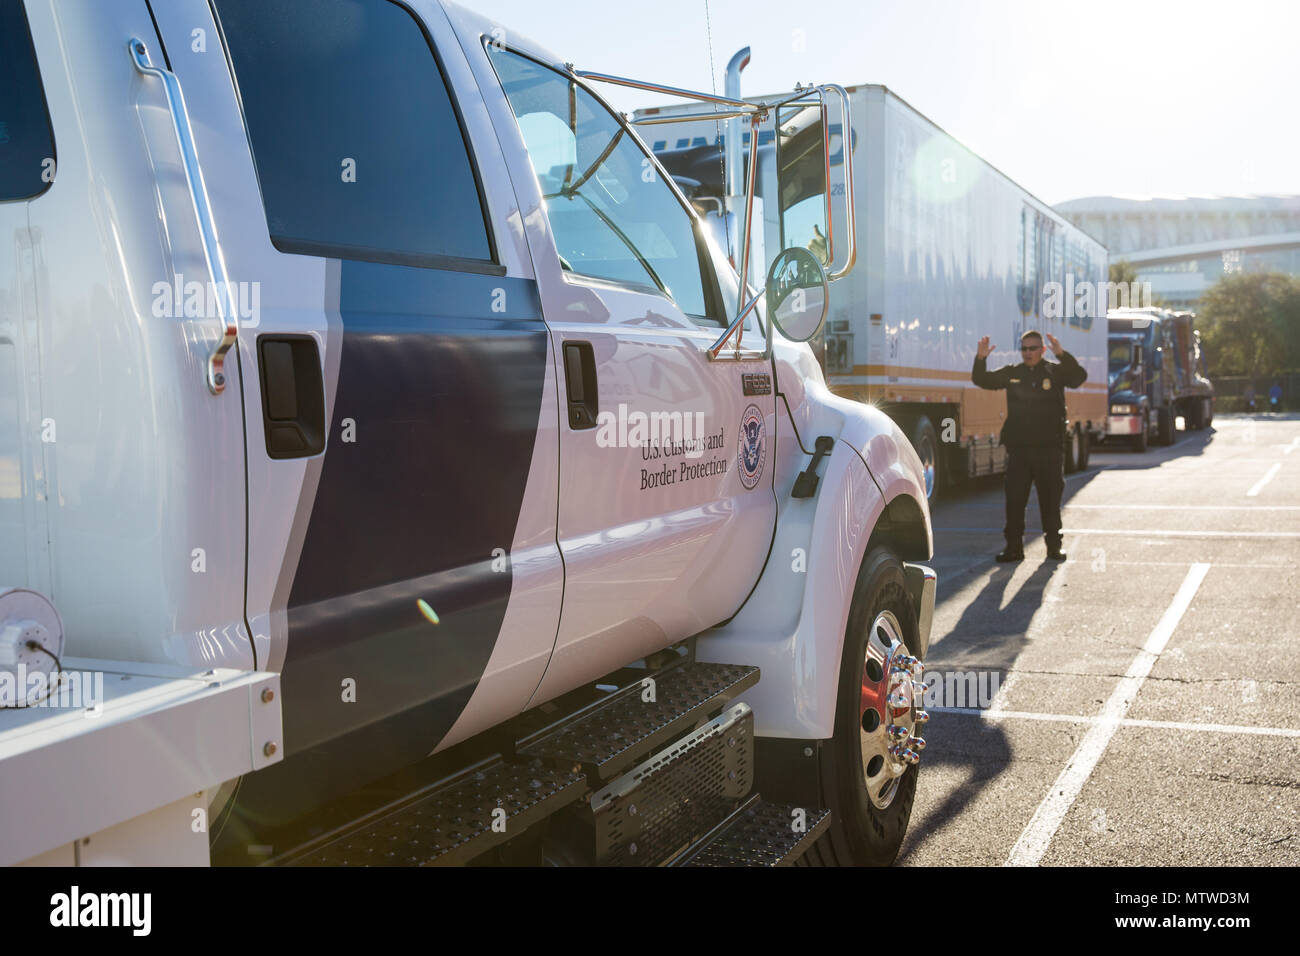 Officers with the U.S. Customs and Border Protection Office of Field Operations conduct inspections of commercial trucks and concession vehicles as they arrive at NRG Stadium in preparation for Super Bowl 51 in Houston, Texas, Jan. 30, 2017. Vehicles are scanned by x-ray prior to entry into the main stadium facilities. U.S. Customs and Border Protection Photo by Ozzy Trevino - Stock Image